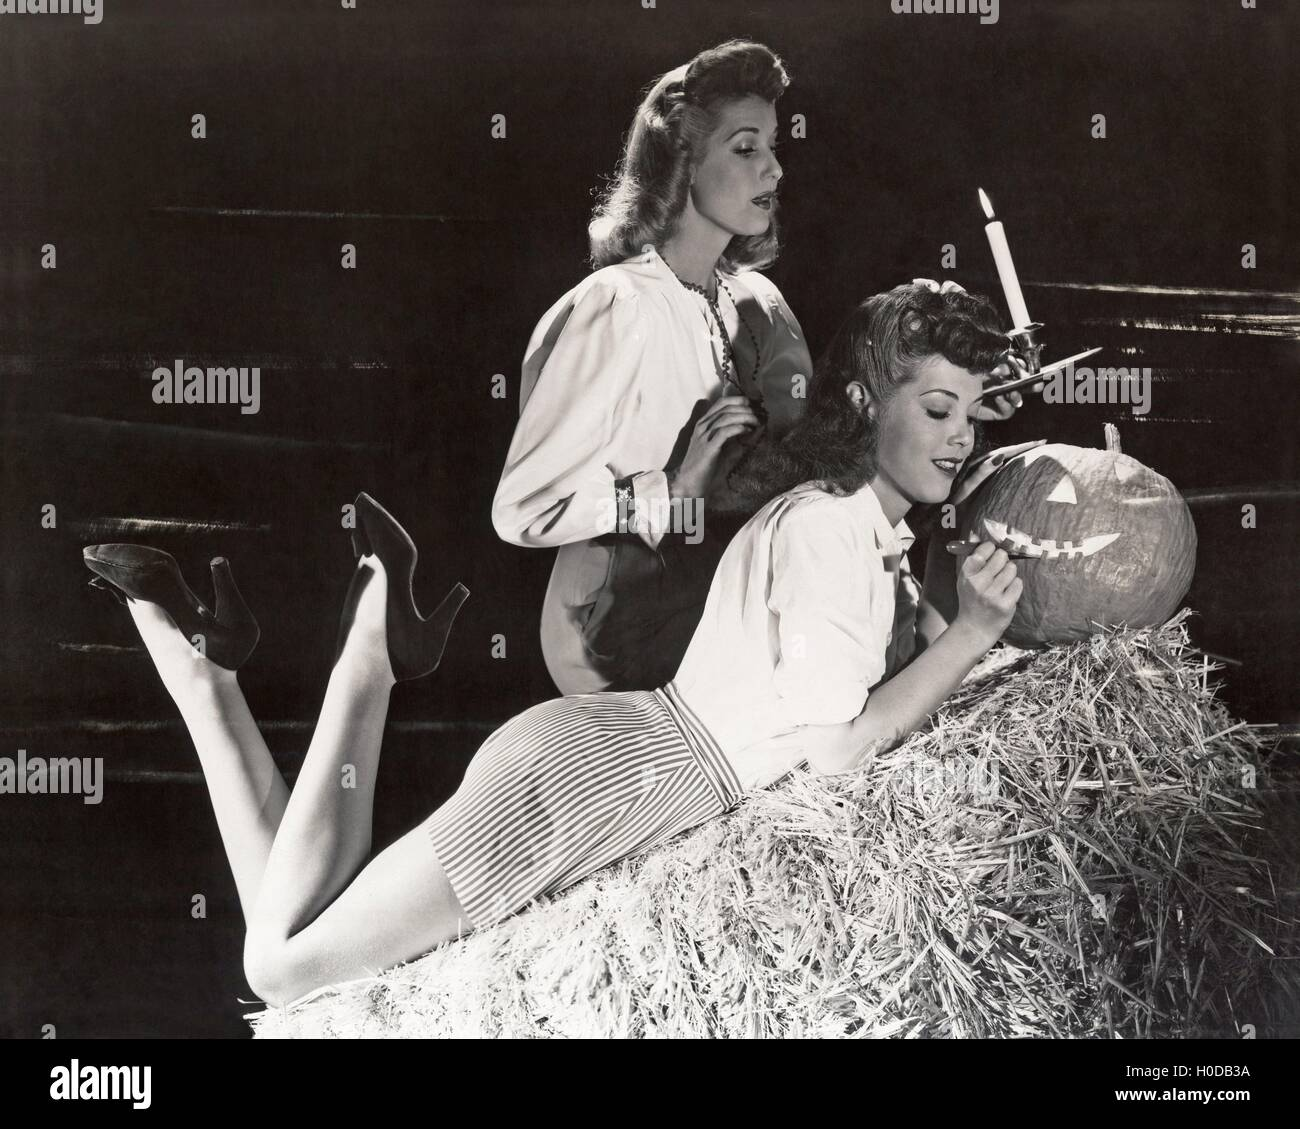 Two women in a barn carving jack o'lantern - Stock Image